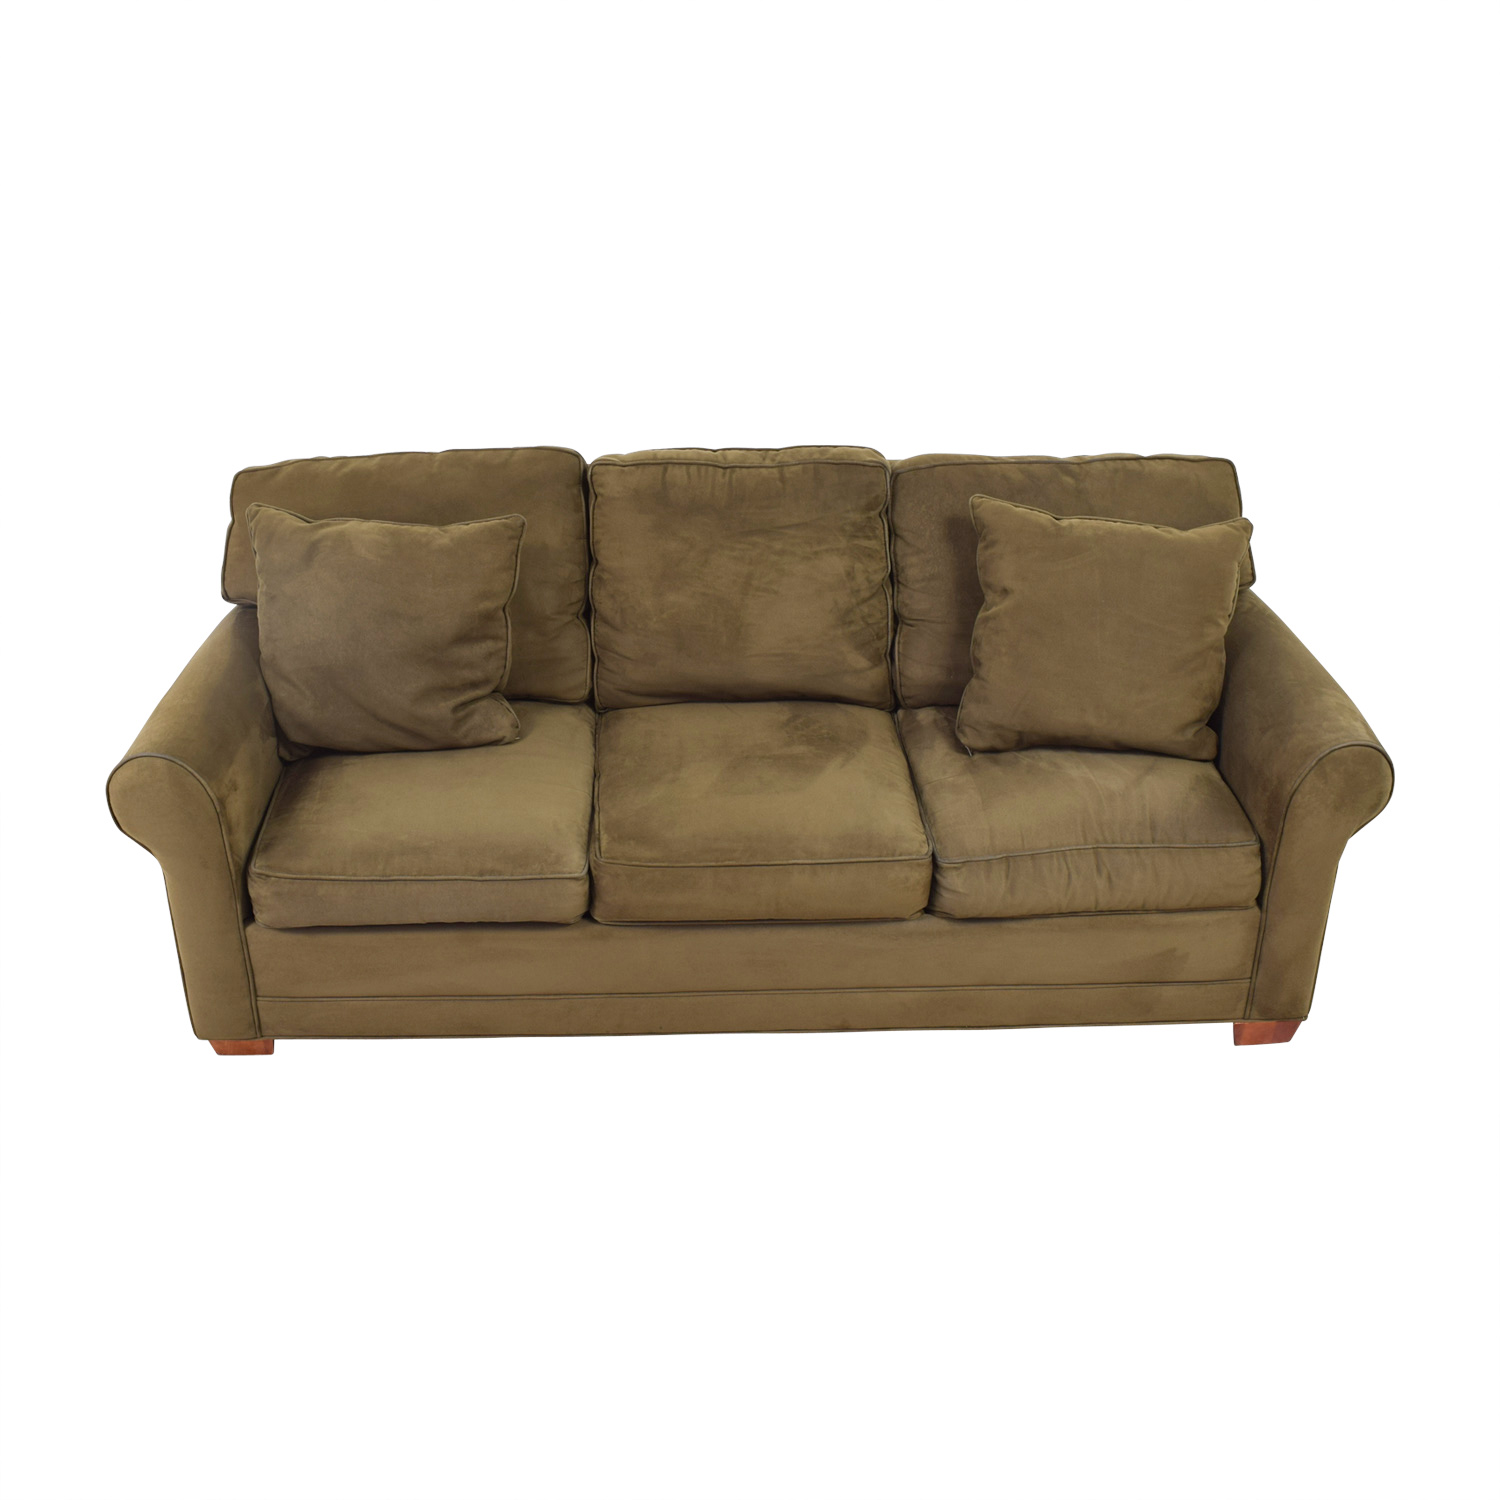 shop Raymour & Flanigan Suede couch Raymour & Flanigan